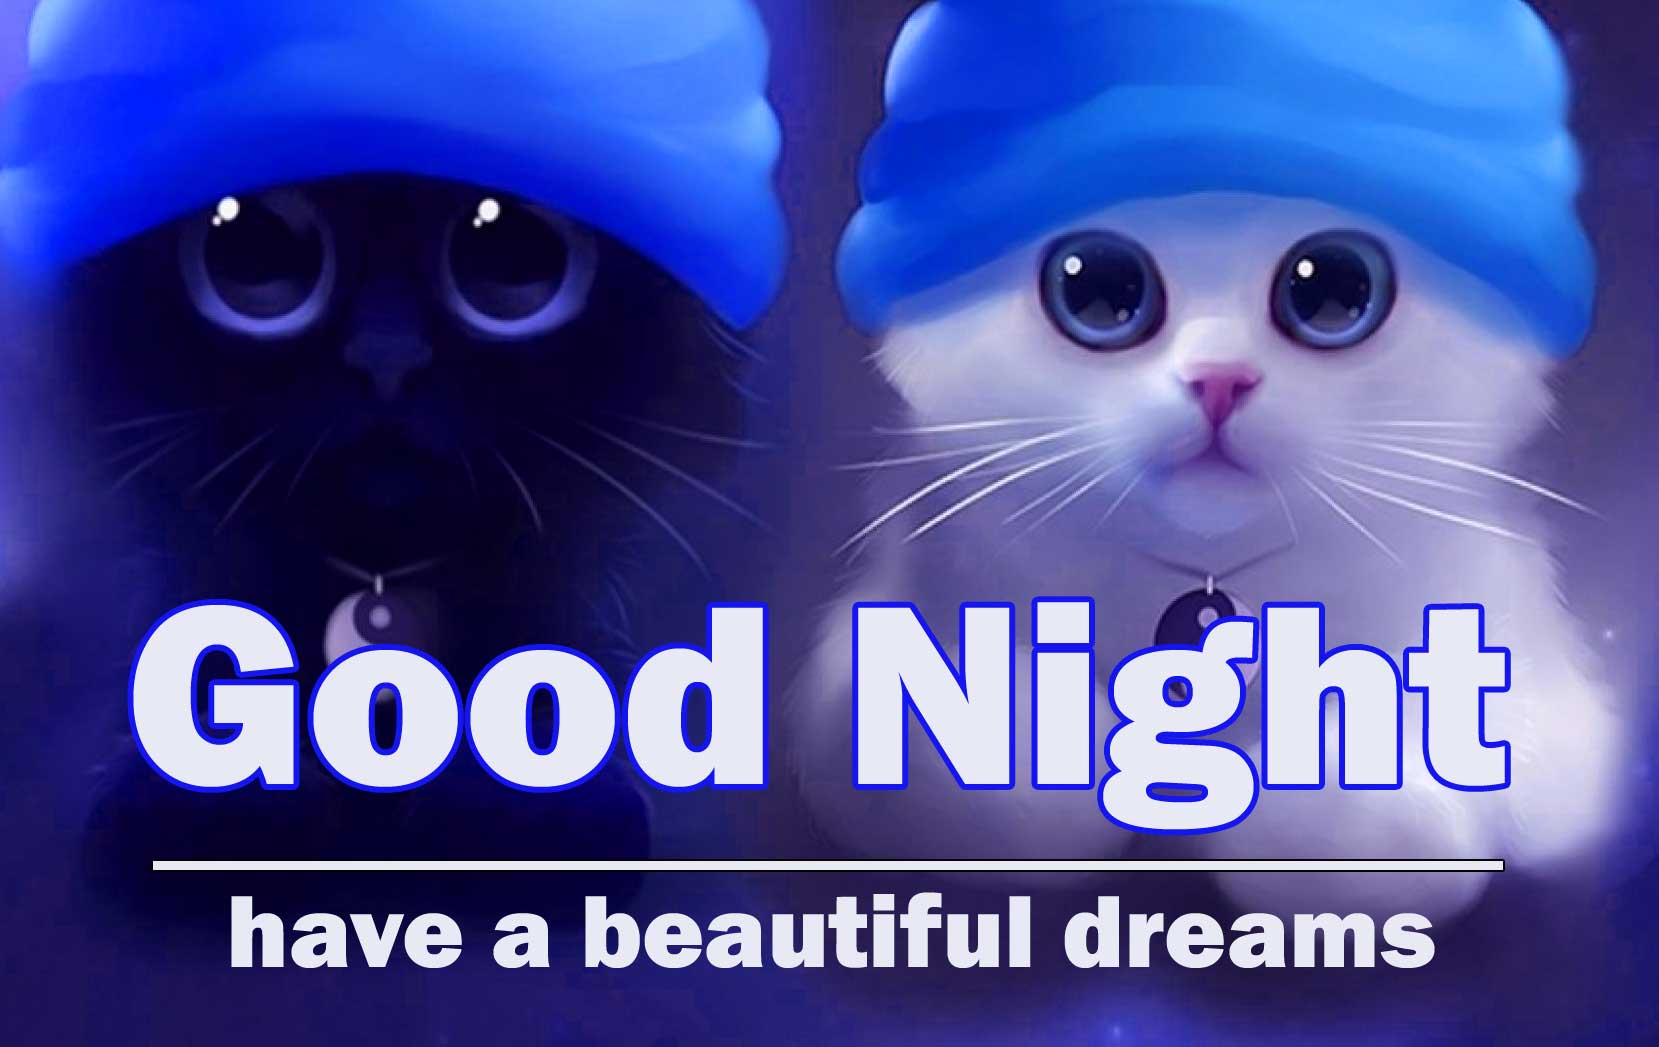 Cute Good Night Wallpaper Download 7